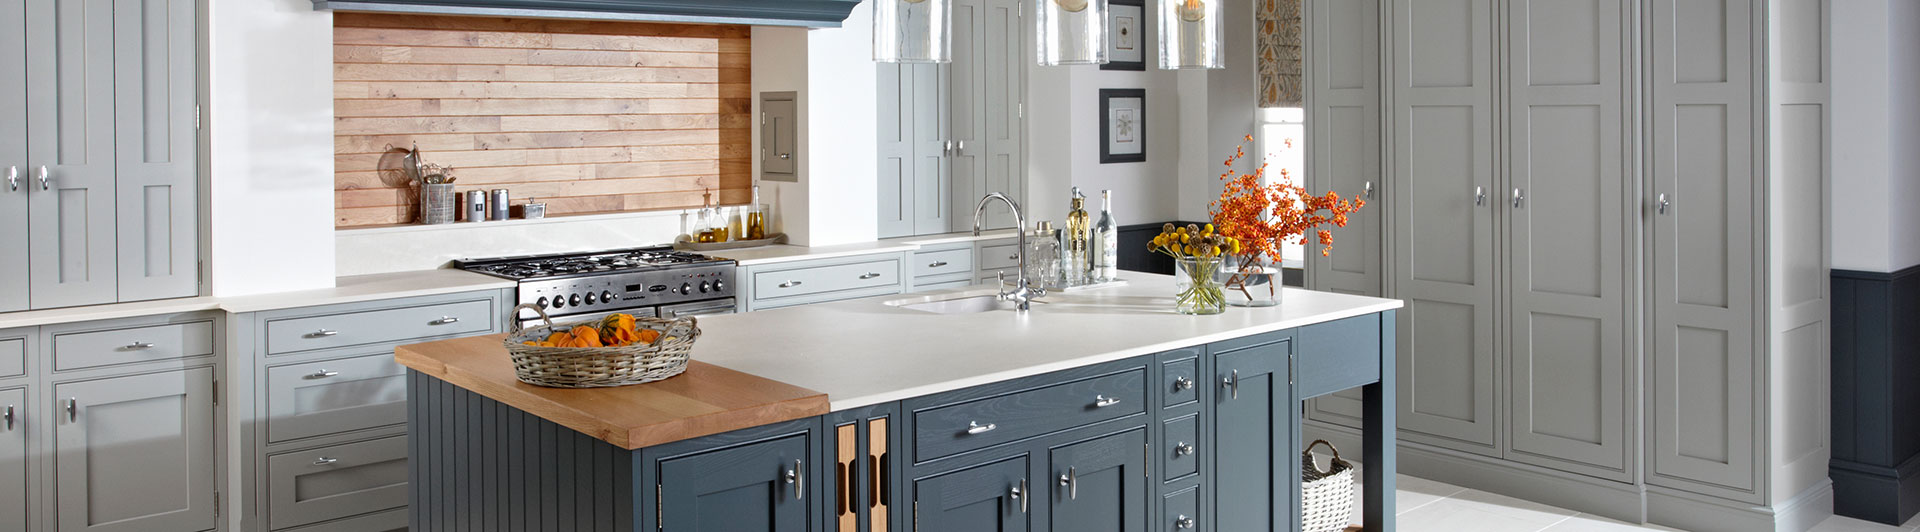 Langton Kitchens header